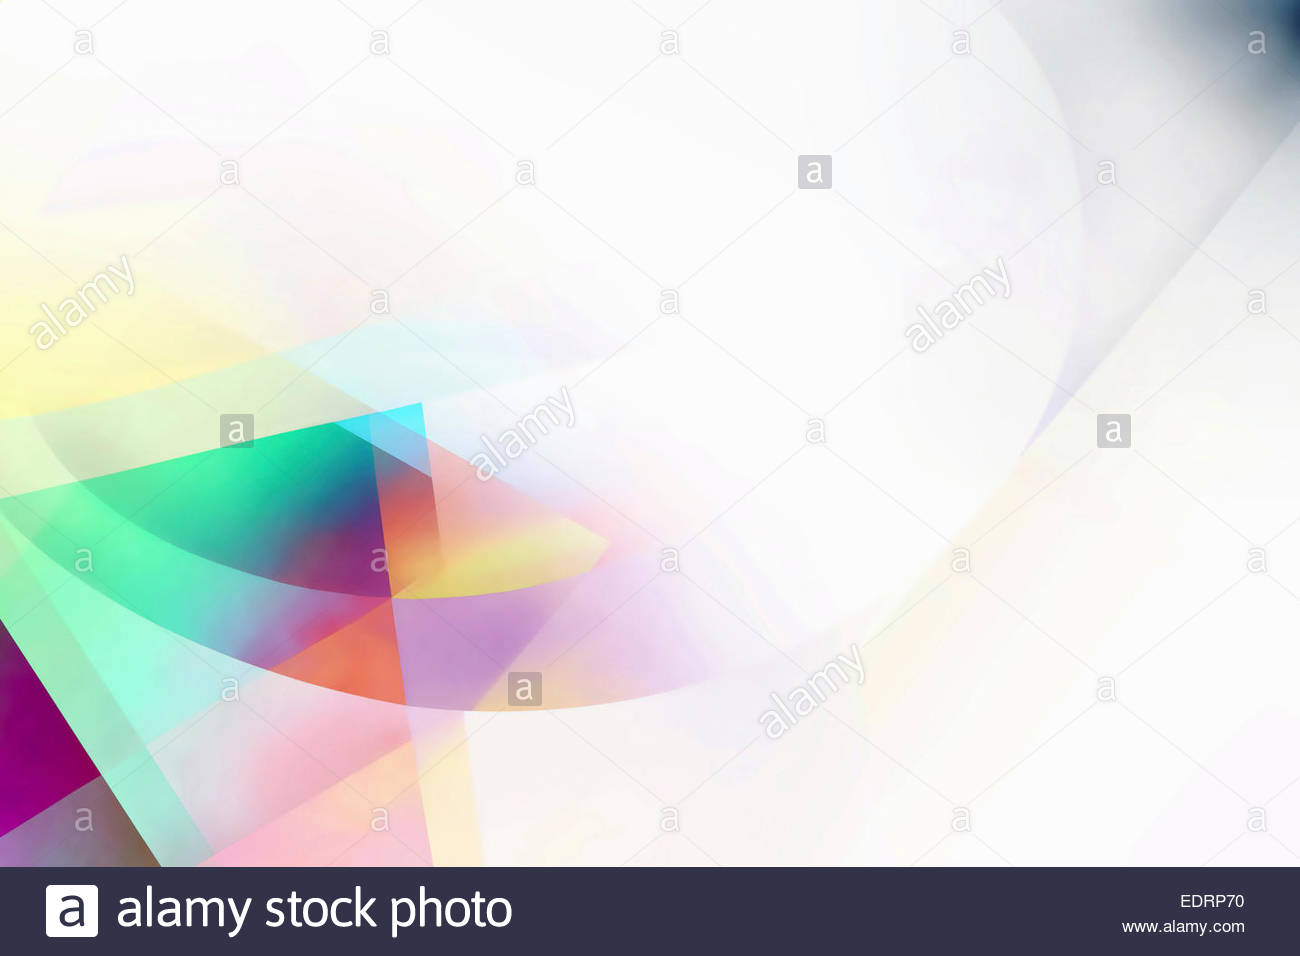 Abstract pastel and white backgrounds pattern - Stock Image